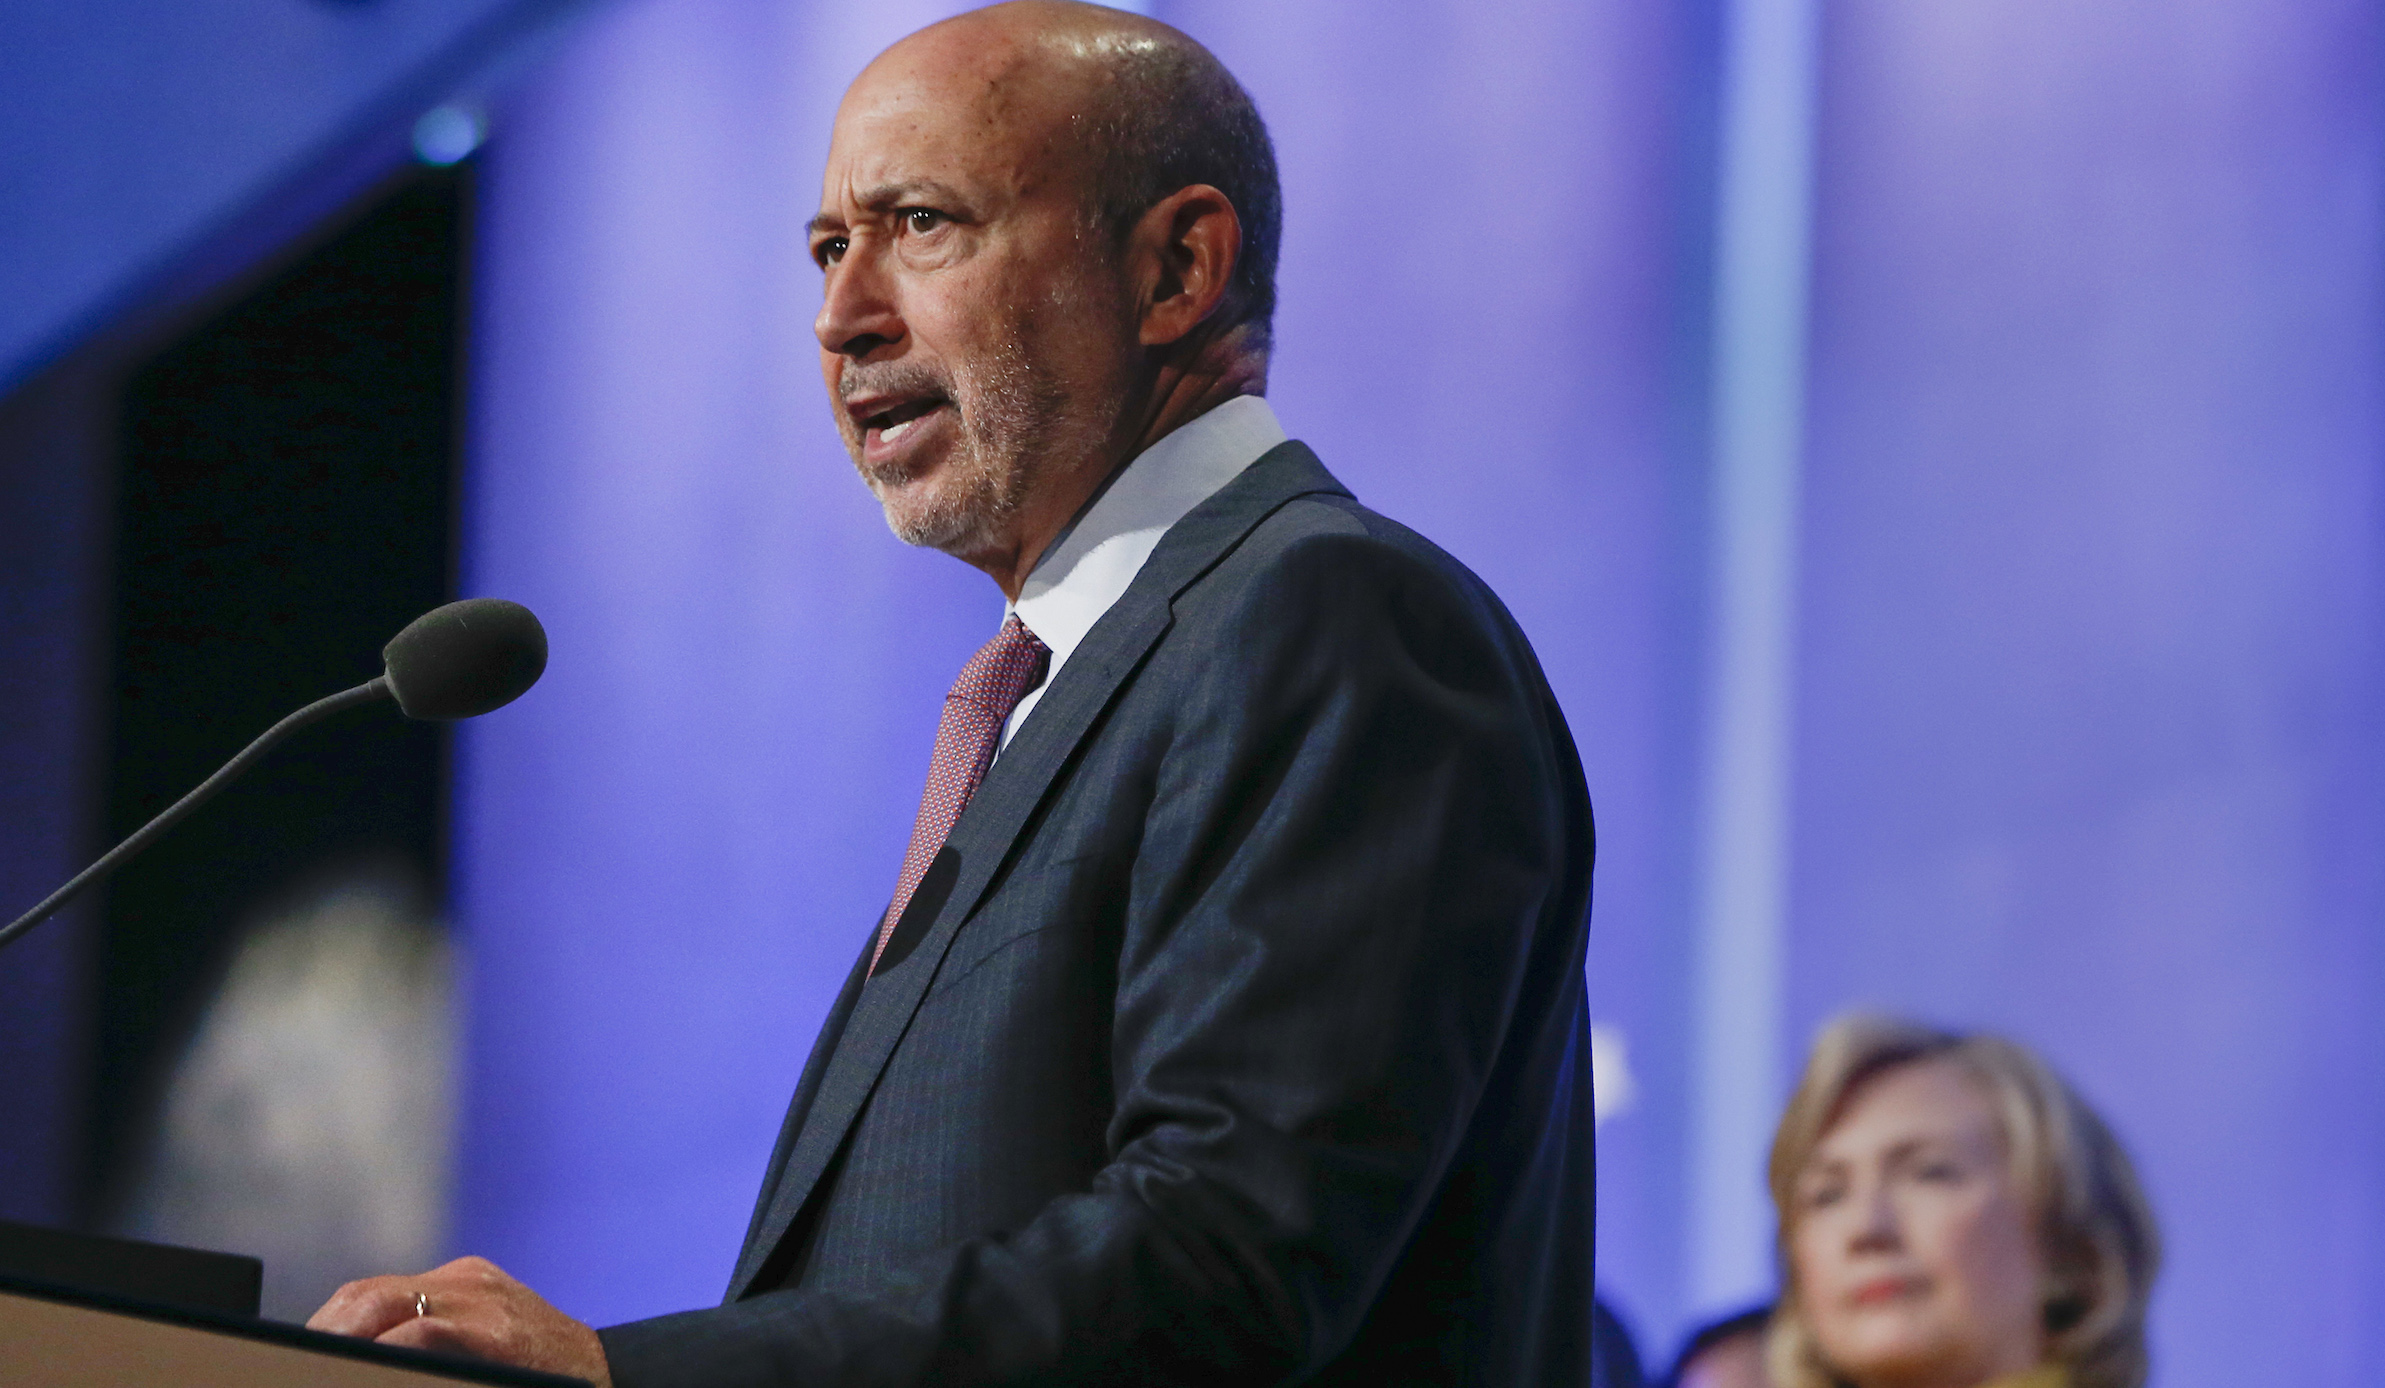 """Goldman Sachs Group Inc. Chairman and Chief Executive Officer Lloyd Blankfein speak as former U.S. Secretary of State Hillary Clinton (L) listens during the plenary session titled """"Equality for Girls and Women: 2034 Instead of 2134?"""" at the Clinton Global Initiative 2014 (CGI) in New York, September 24, 2014. The CGI was created by former U.S. President Bill Clinton in 2005 to gather global leaders to discuss solutions to the world's problems. REUTERS/Shannon Stapleton (UNITED STATES - Tags: POLITICS SOCIETY BUSINESS) - RTR47J6X"""